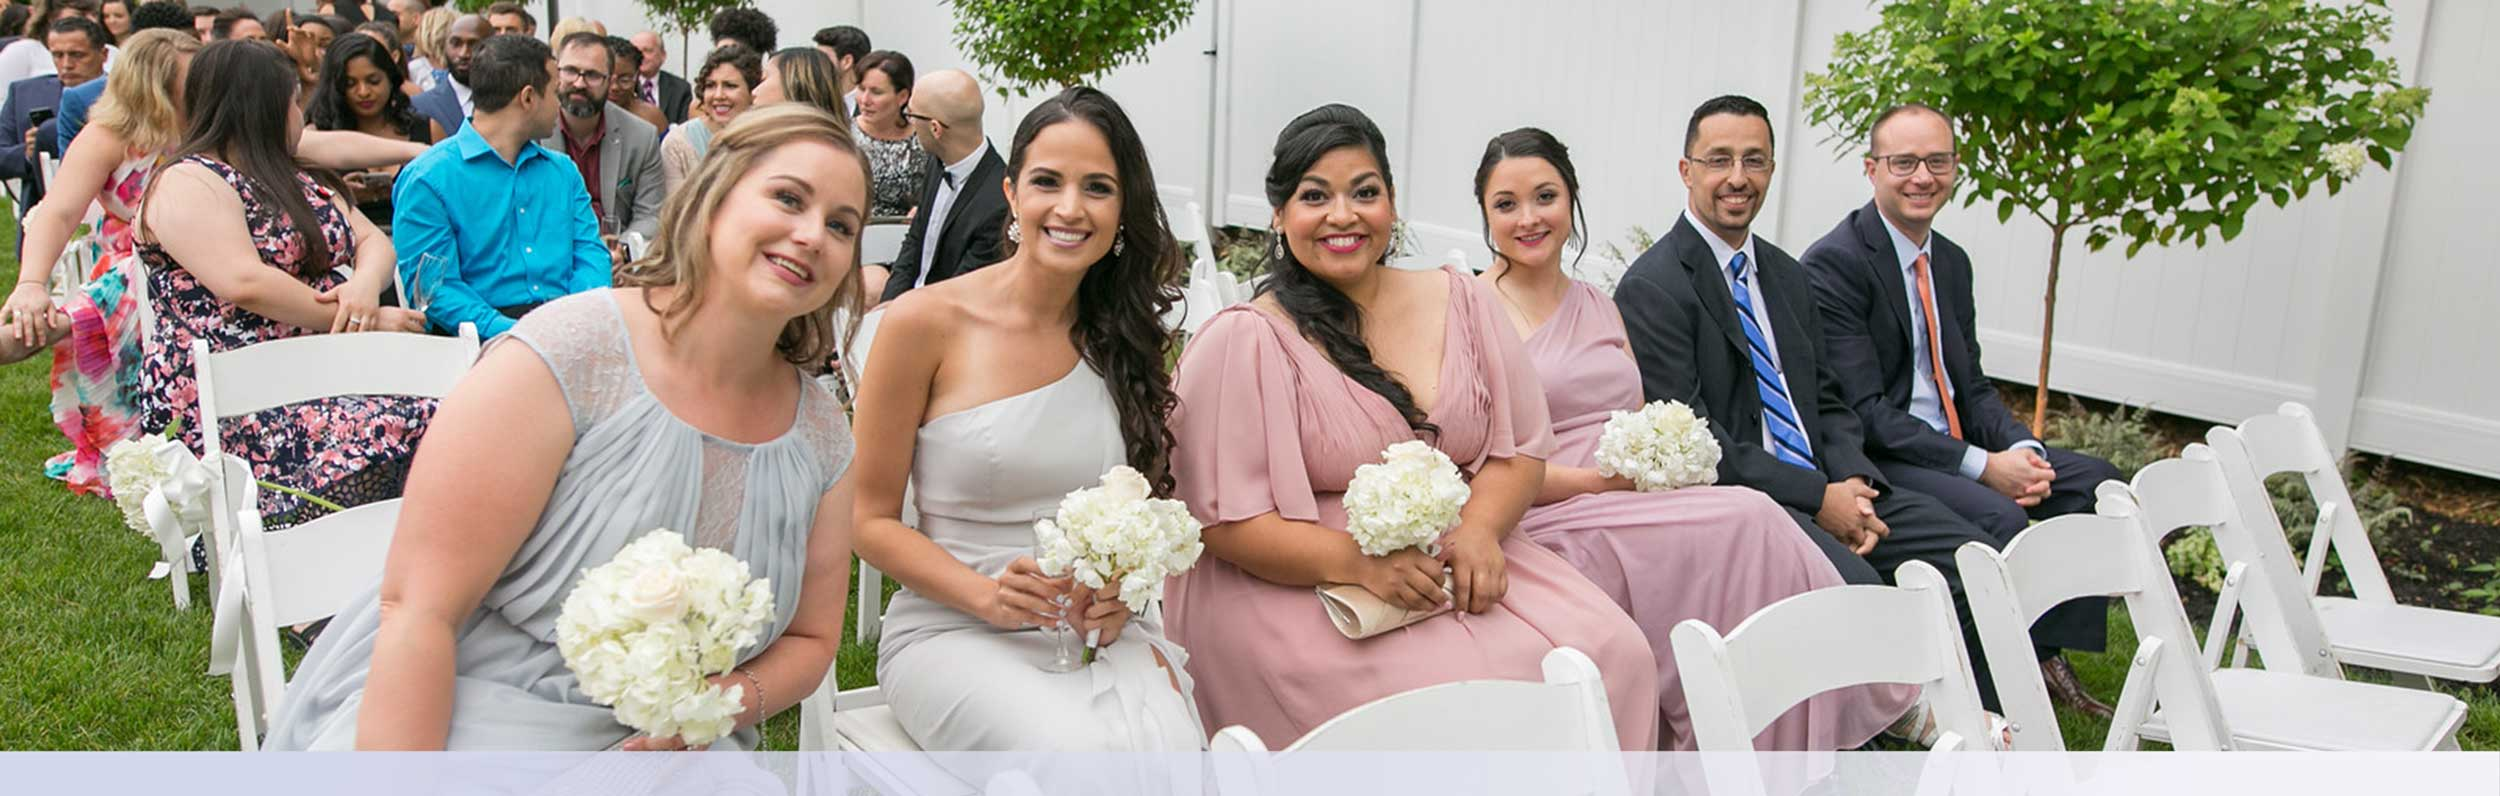 Bridesmaids Outdoor Wedding Ceremony